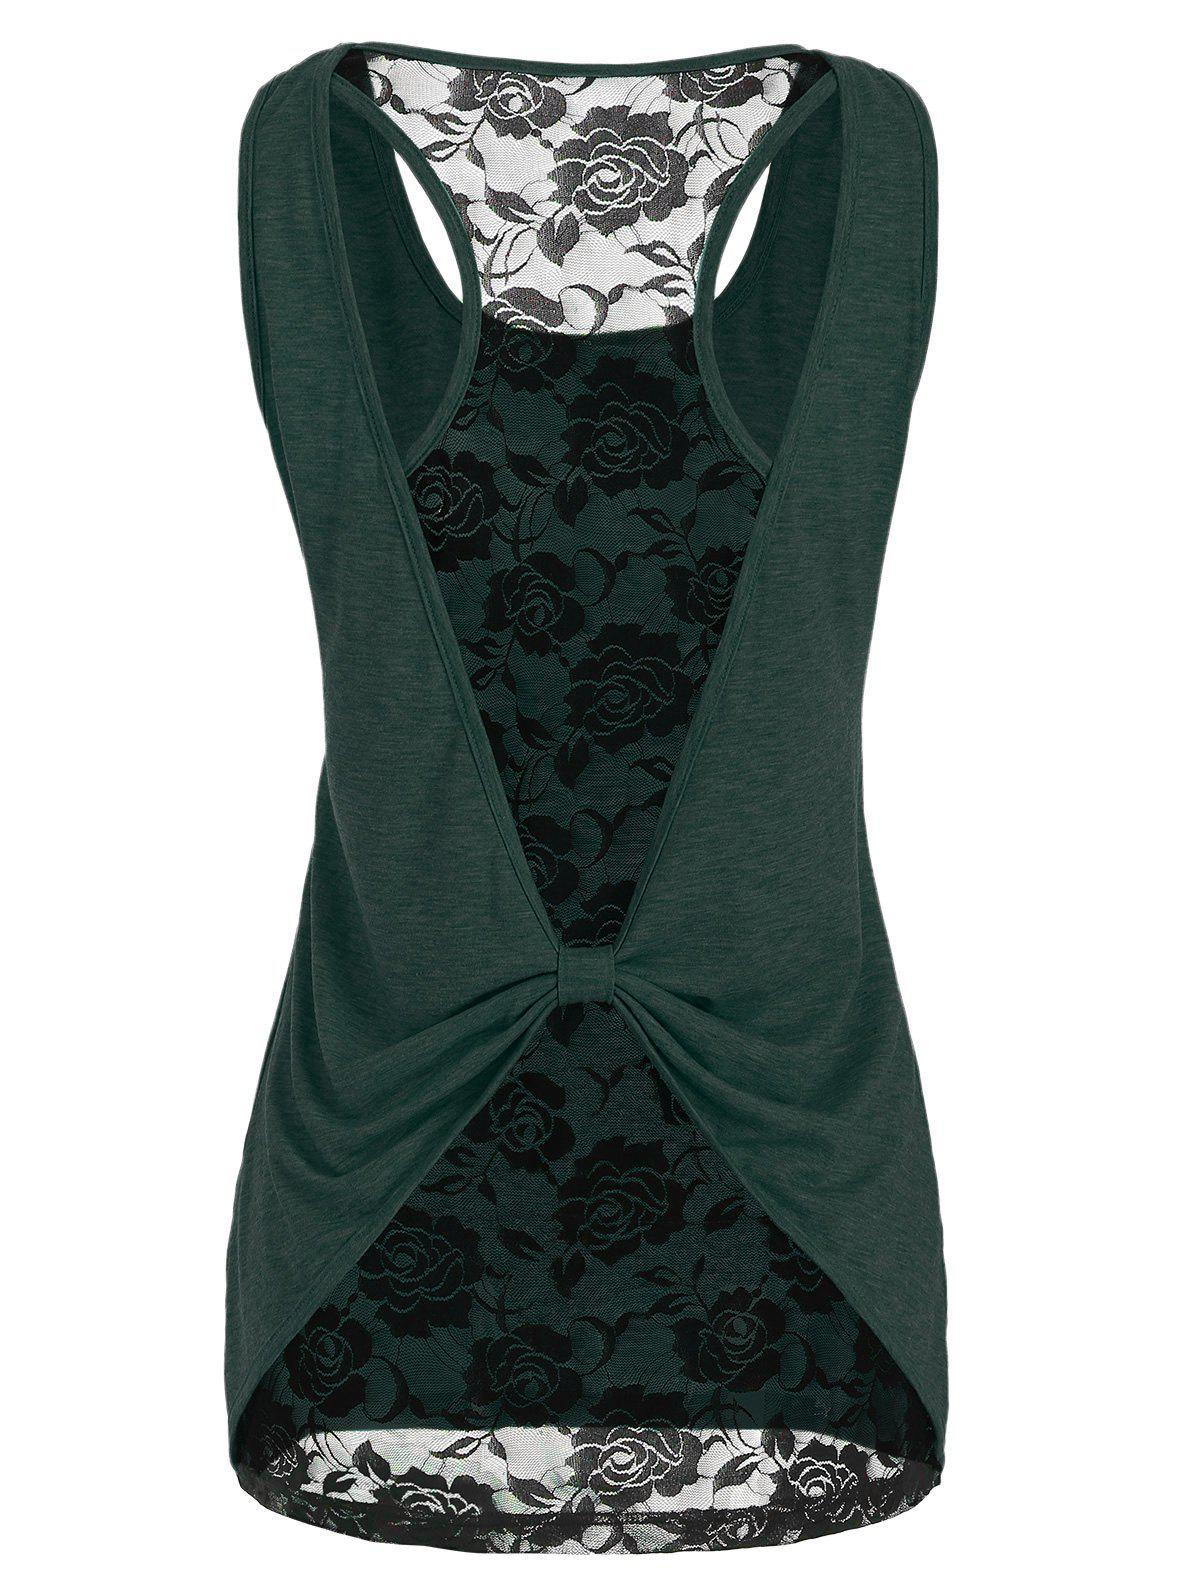 Unique Cut Out Lace Insert Marled Tank Top